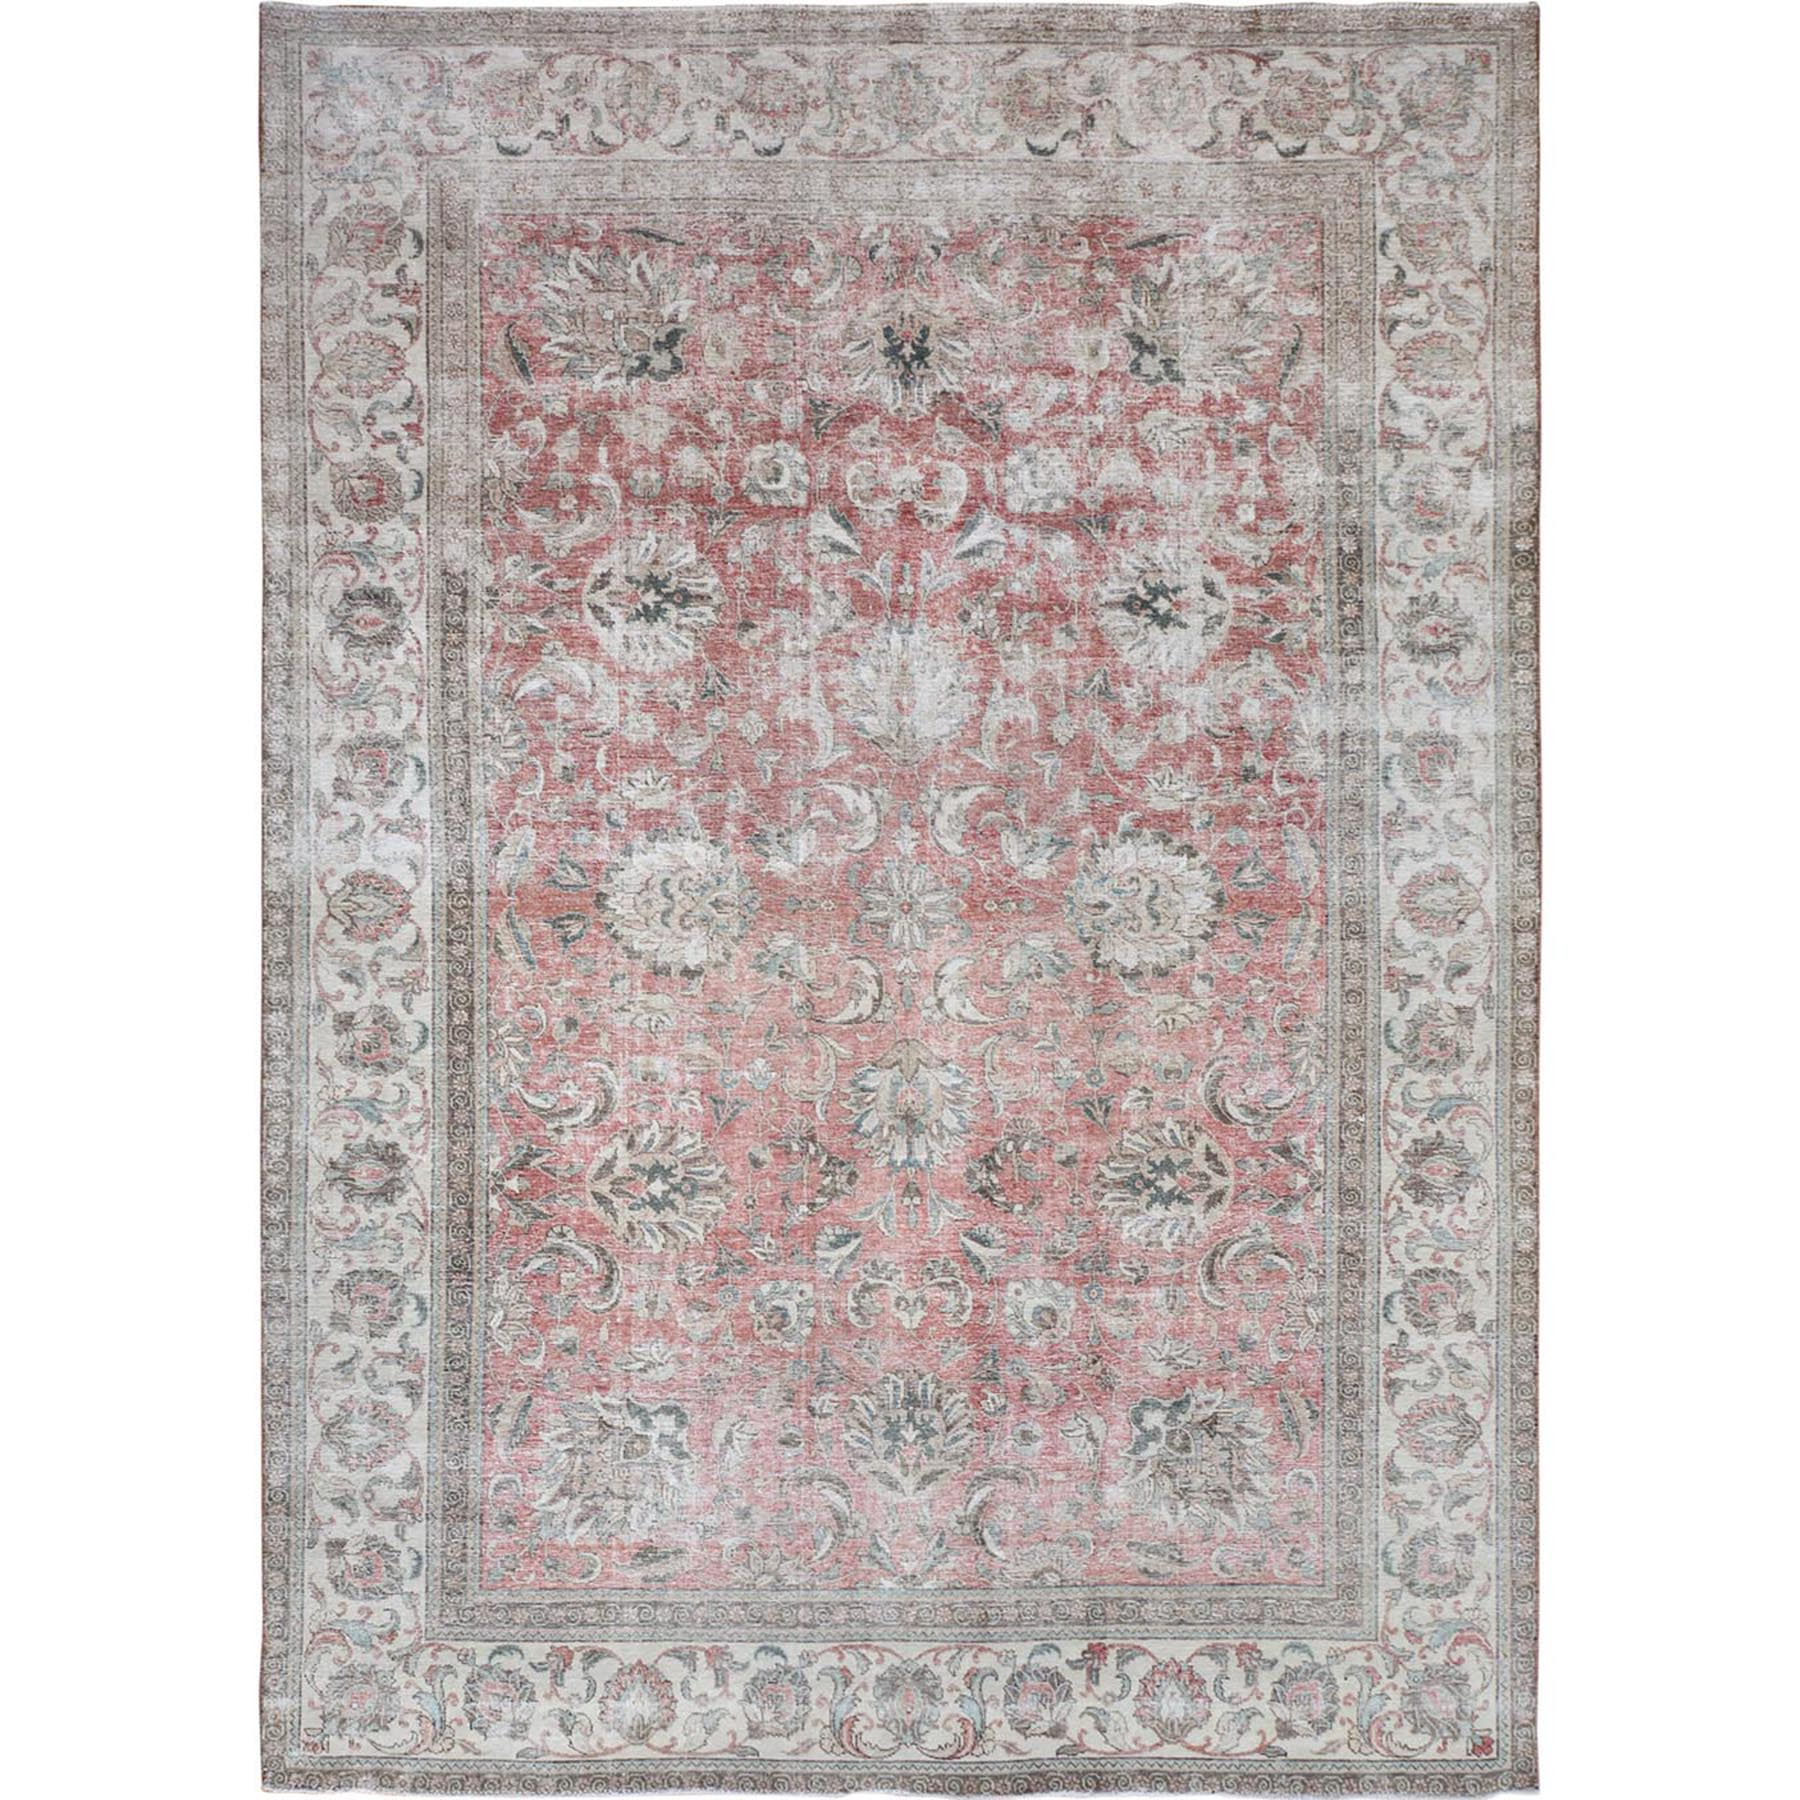 Fetneh Collection And Vintage Overdyed Collection Hand Knotted Red Rug No: 01114682